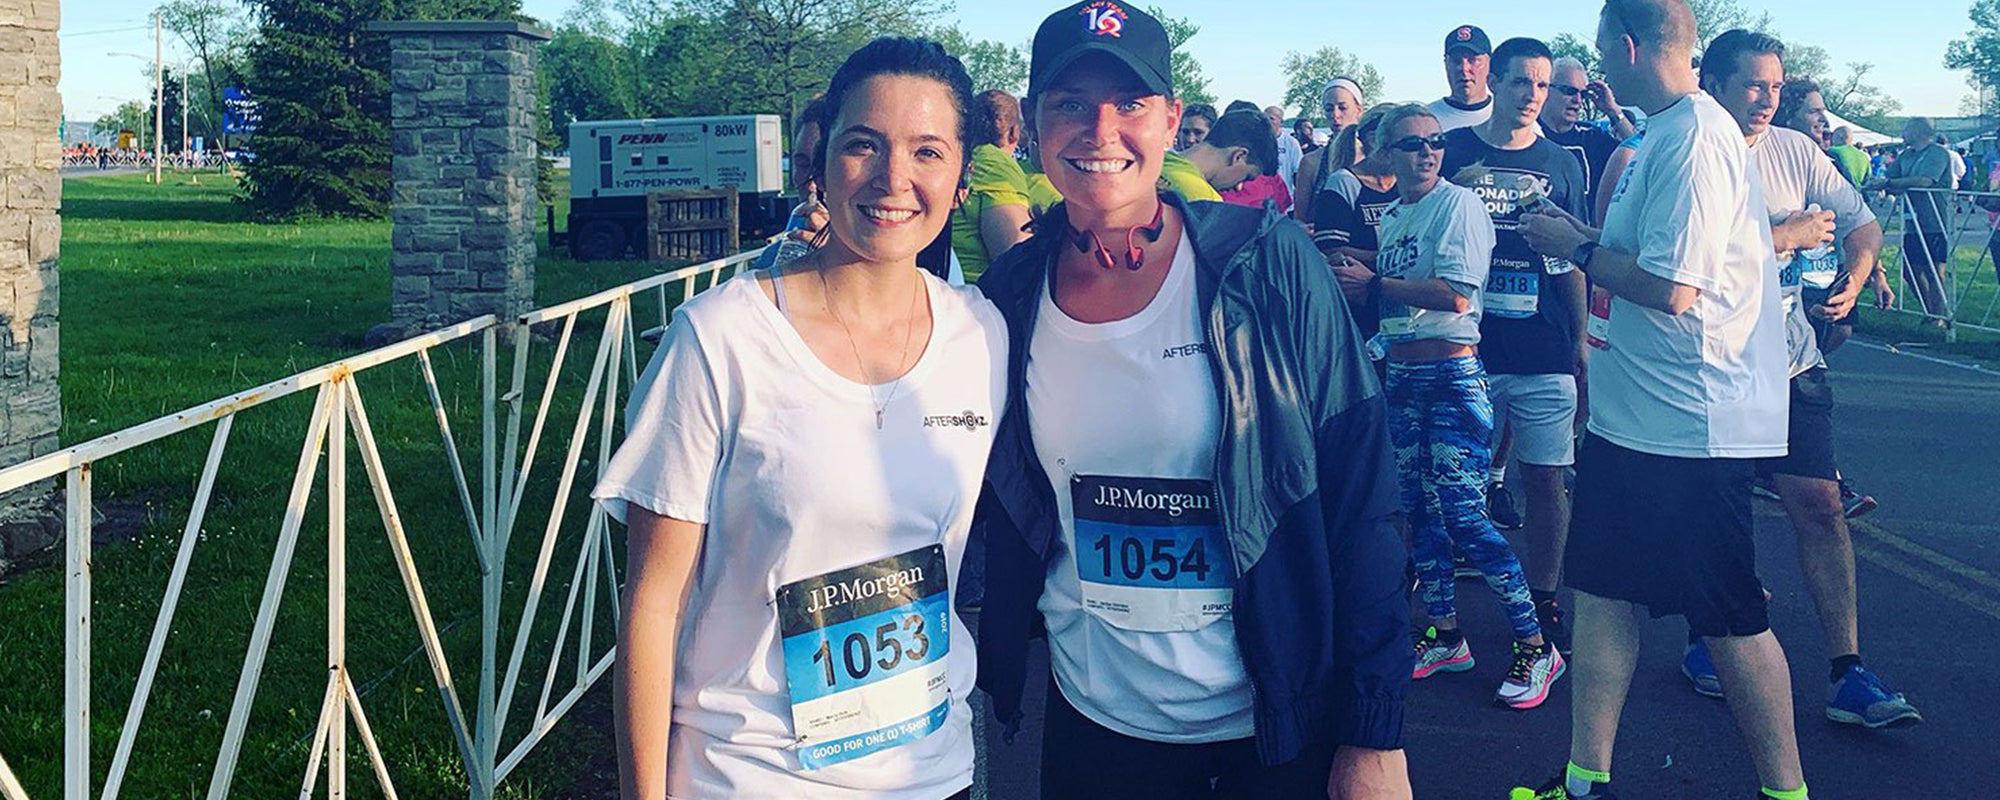 Team AfterShokz Takes on the J.P. Morgan Corporate Challenge